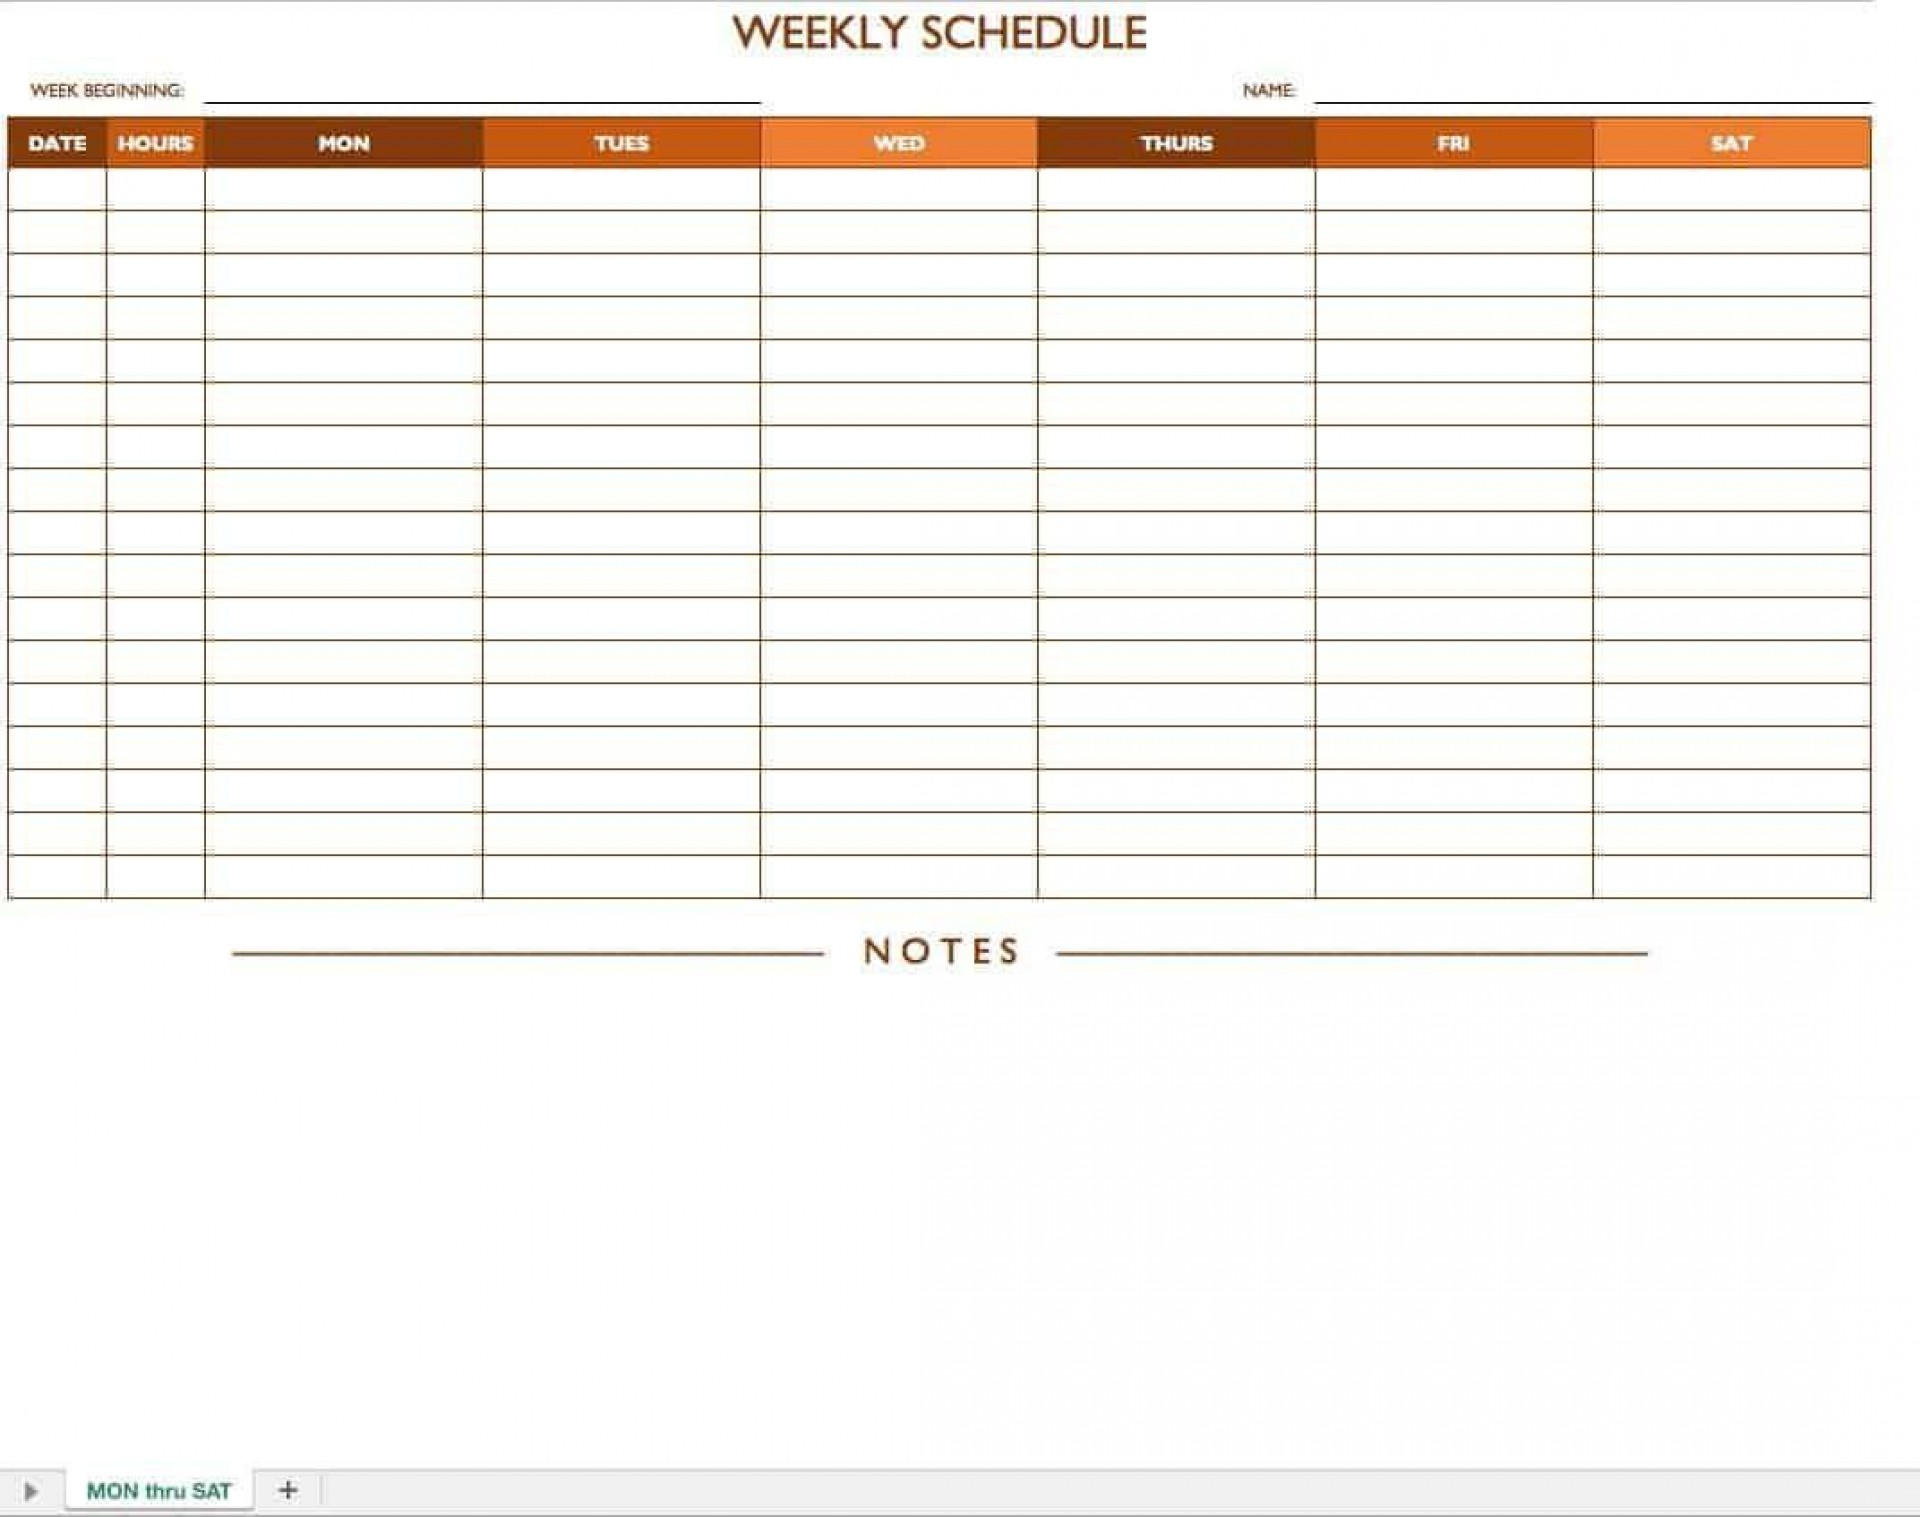 007 Top Free Staff Scheduling Template Design  Templates Excel Holiday Planner Printable Weekly Employee Work Schedule1920